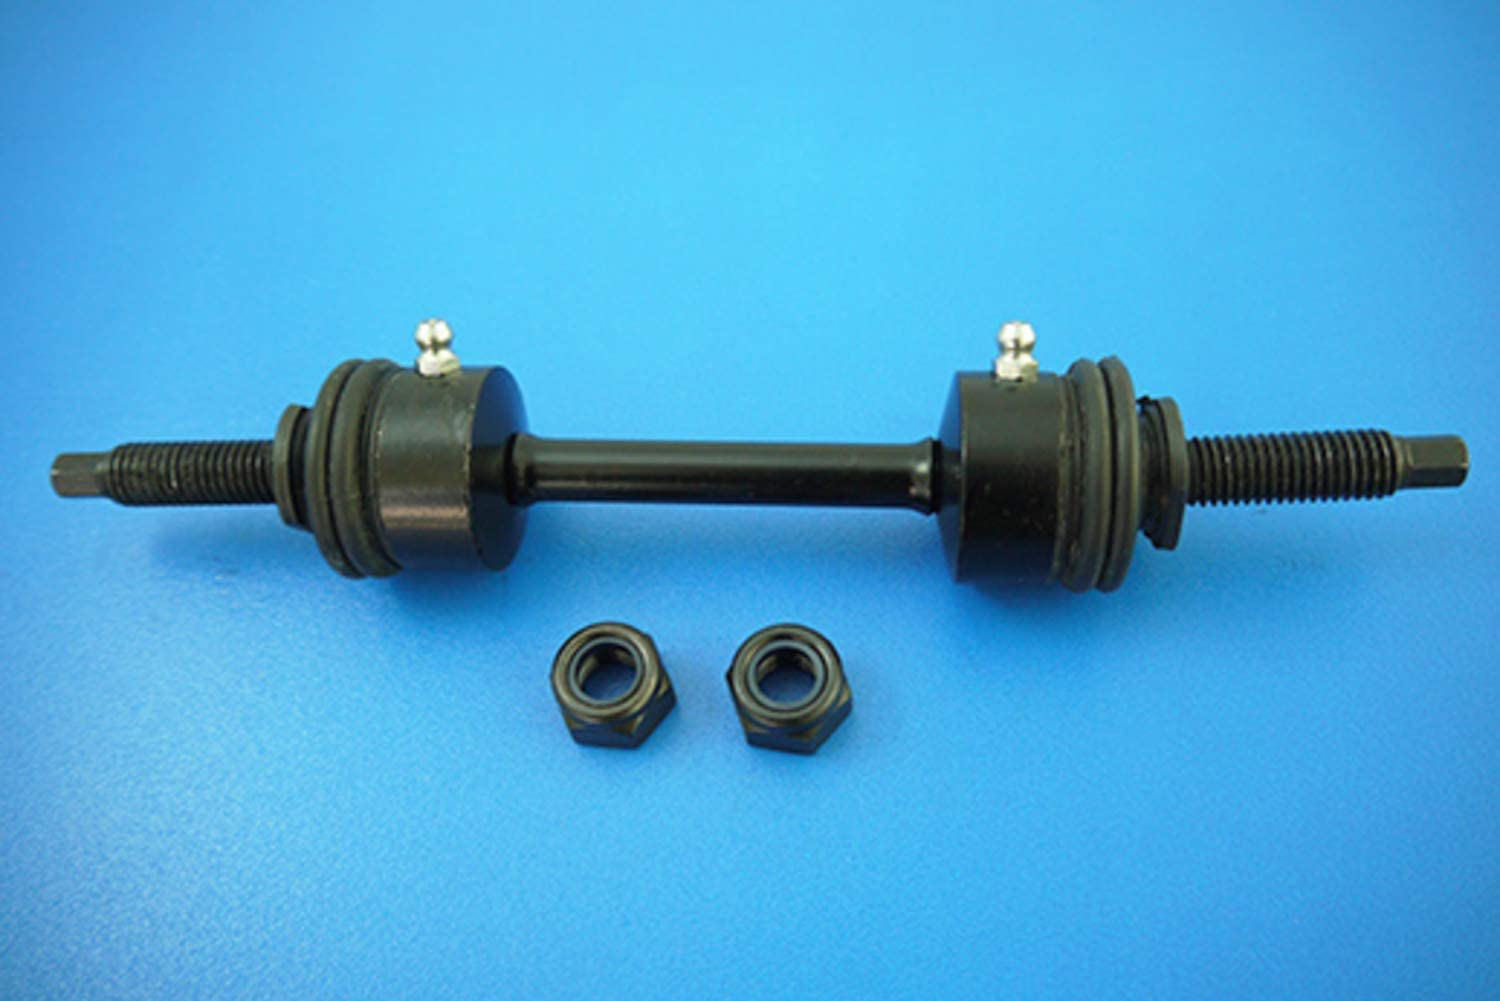 Note: 4WD Package include One Sway Bar Link Only 2011 fits Ford F-150 Front Suspension Stabilizer Bar Link With Five Years Warranty